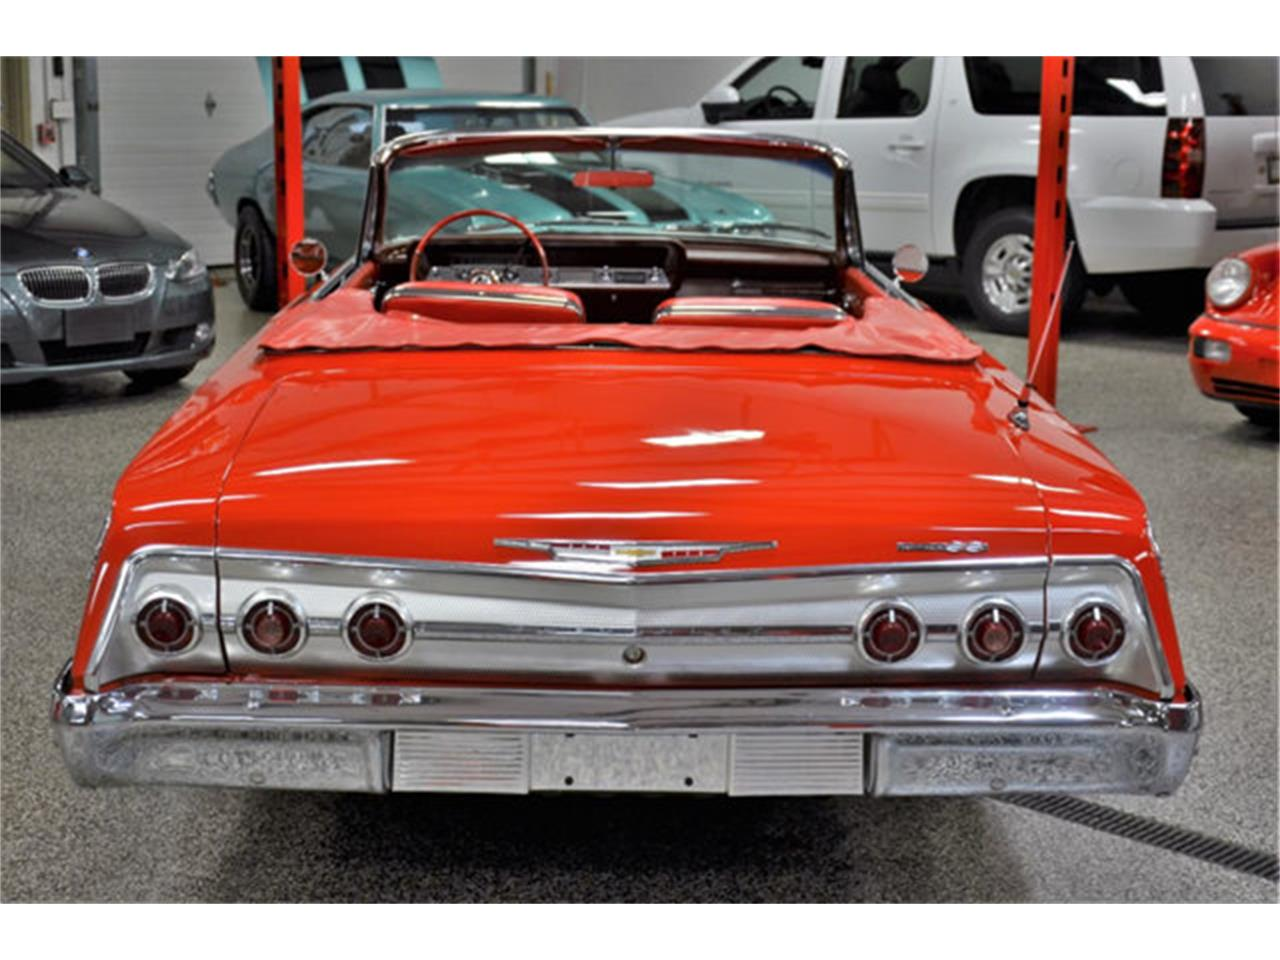 1962 Chevrolet Impala SS (CC-1265468) for sale in Plainfield, Illinois